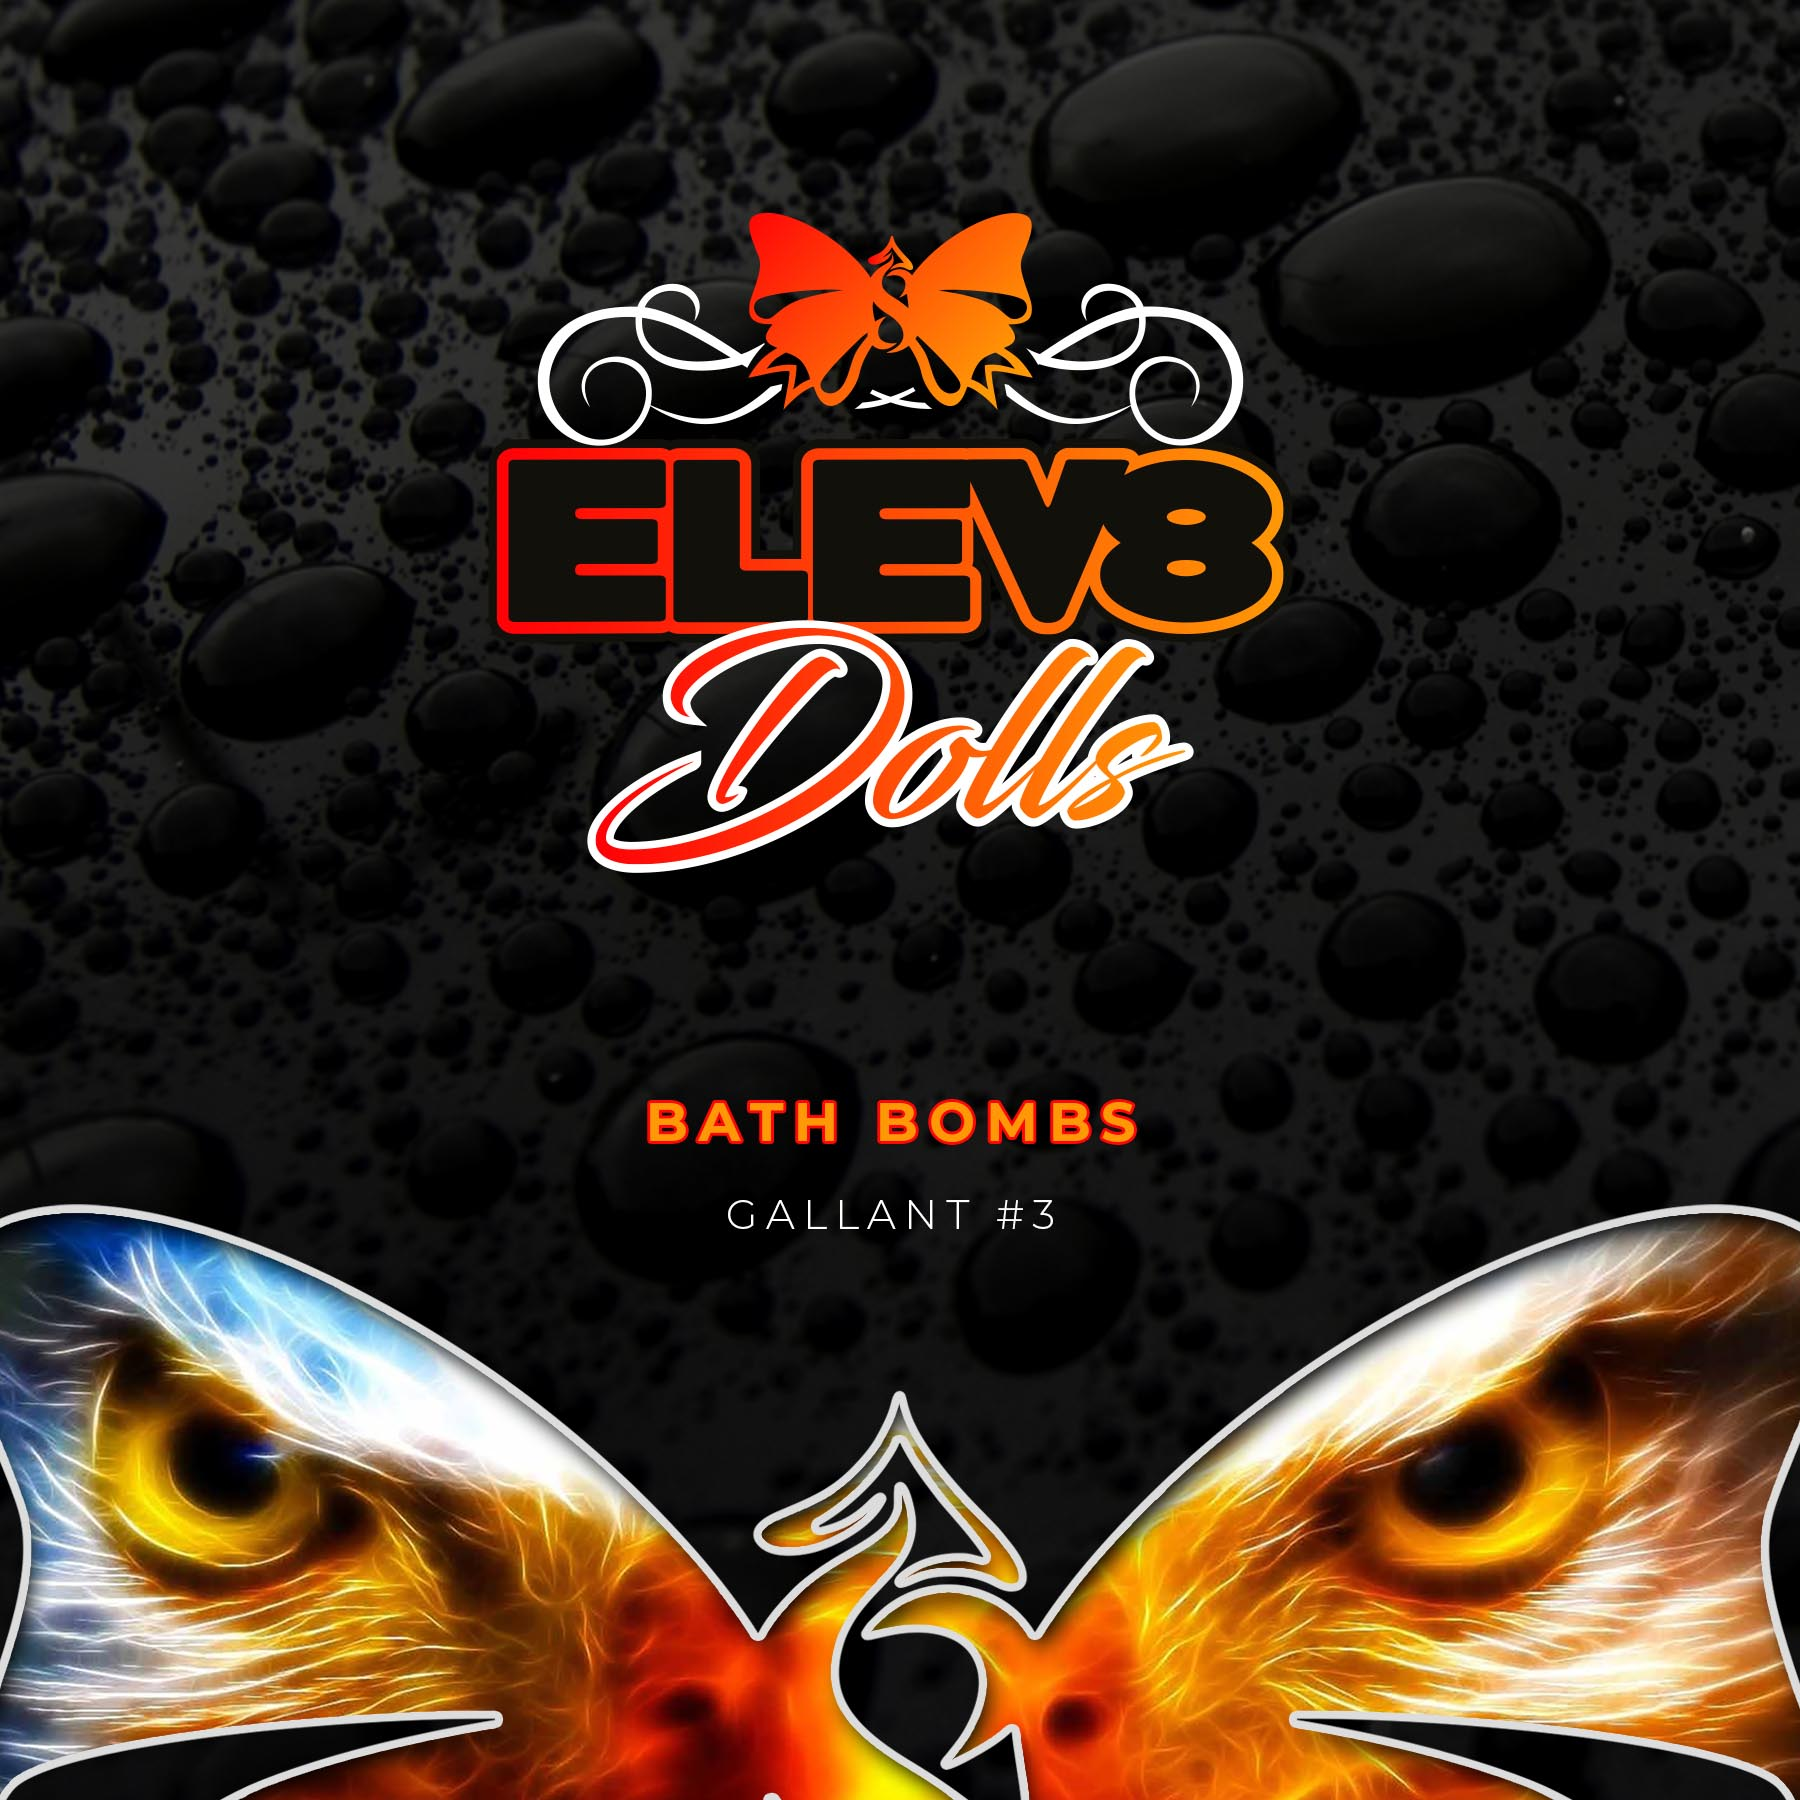 gallant-3-elev8-doll-bath-bomb.jpg